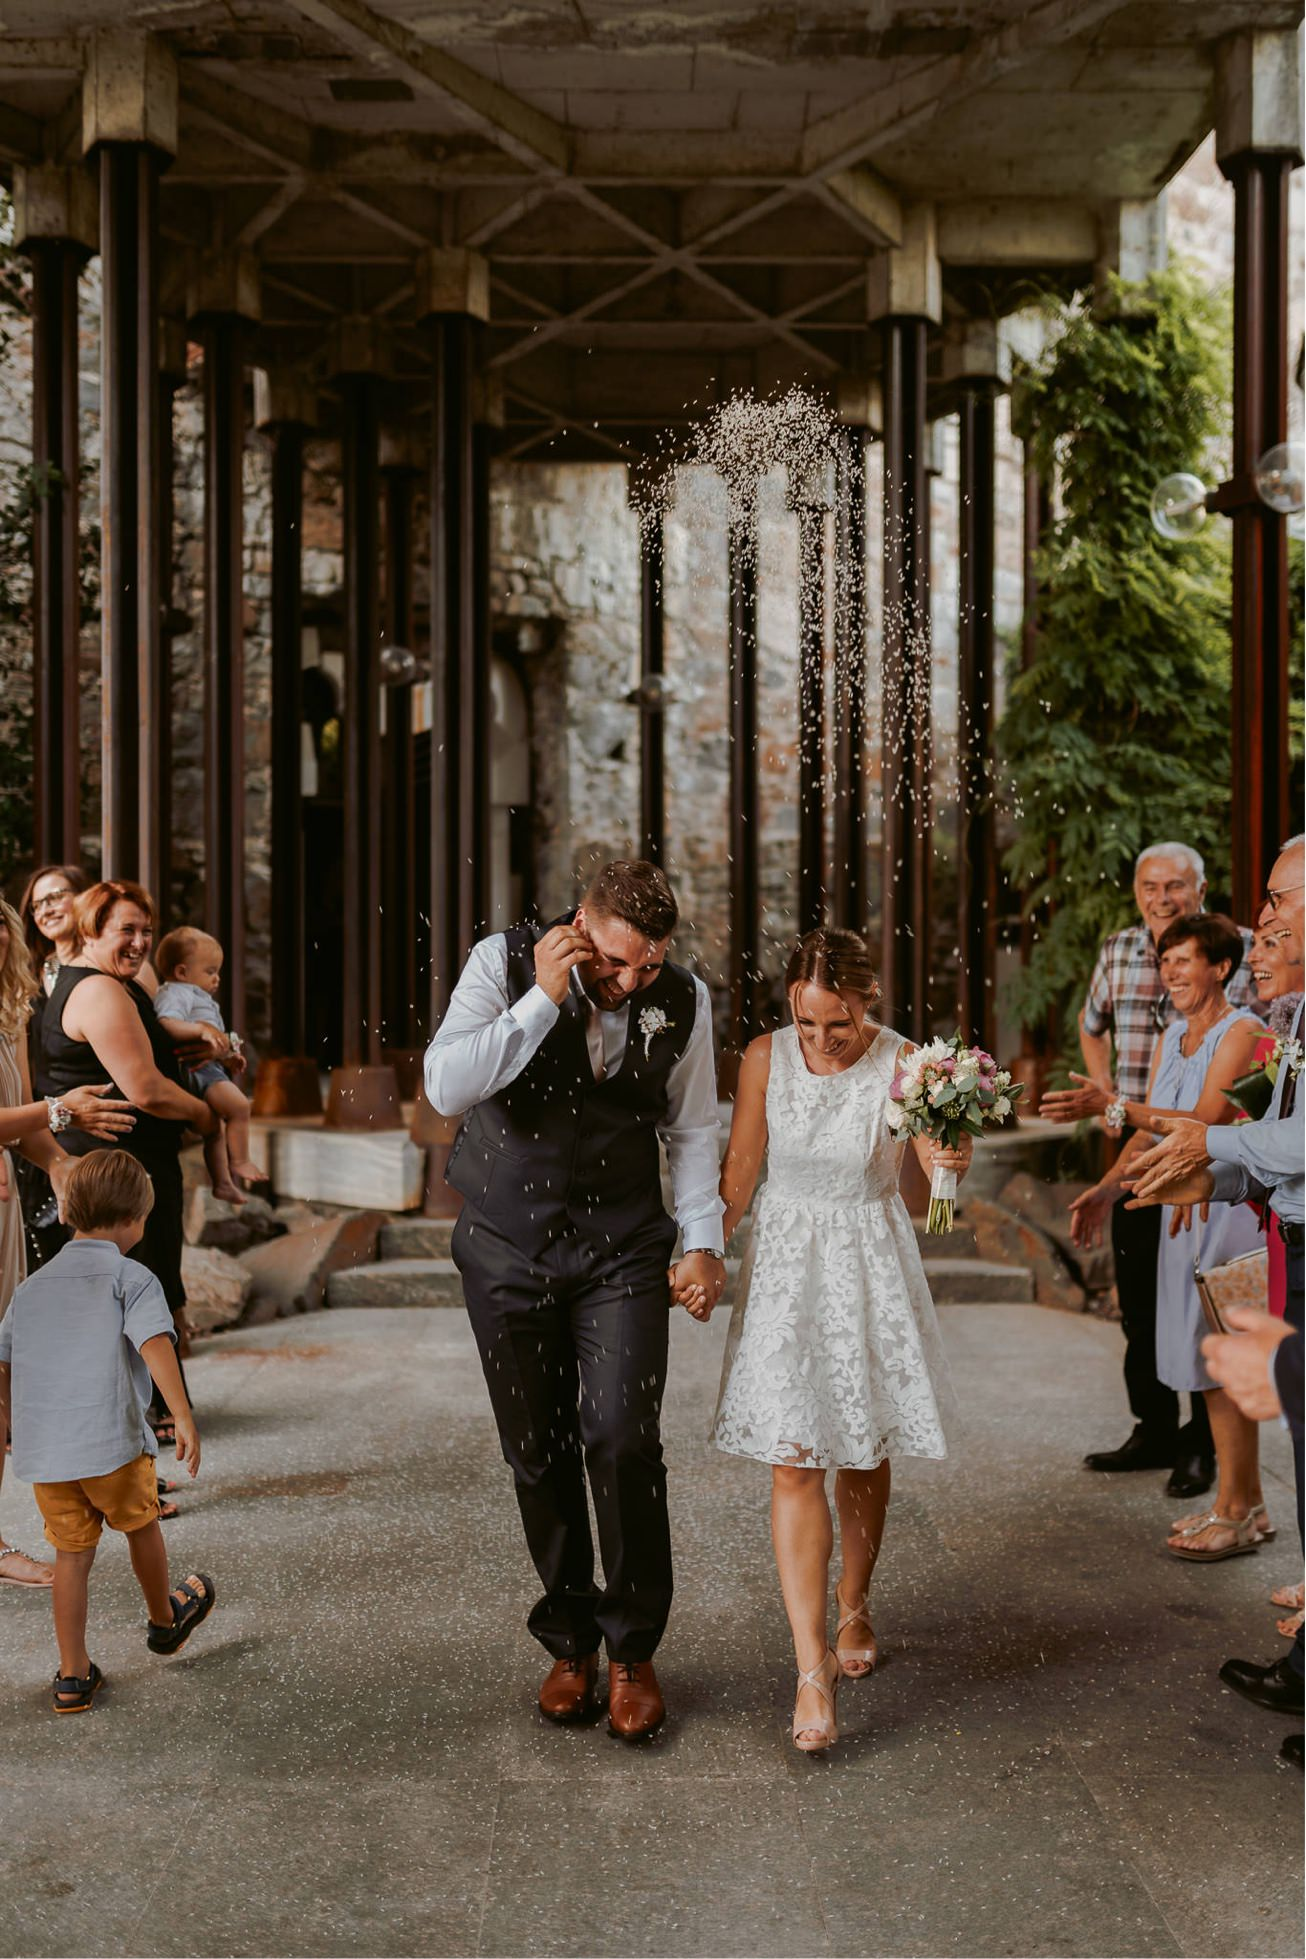 Ljubljana castle Dvor jezersek Wedding Photographer 39